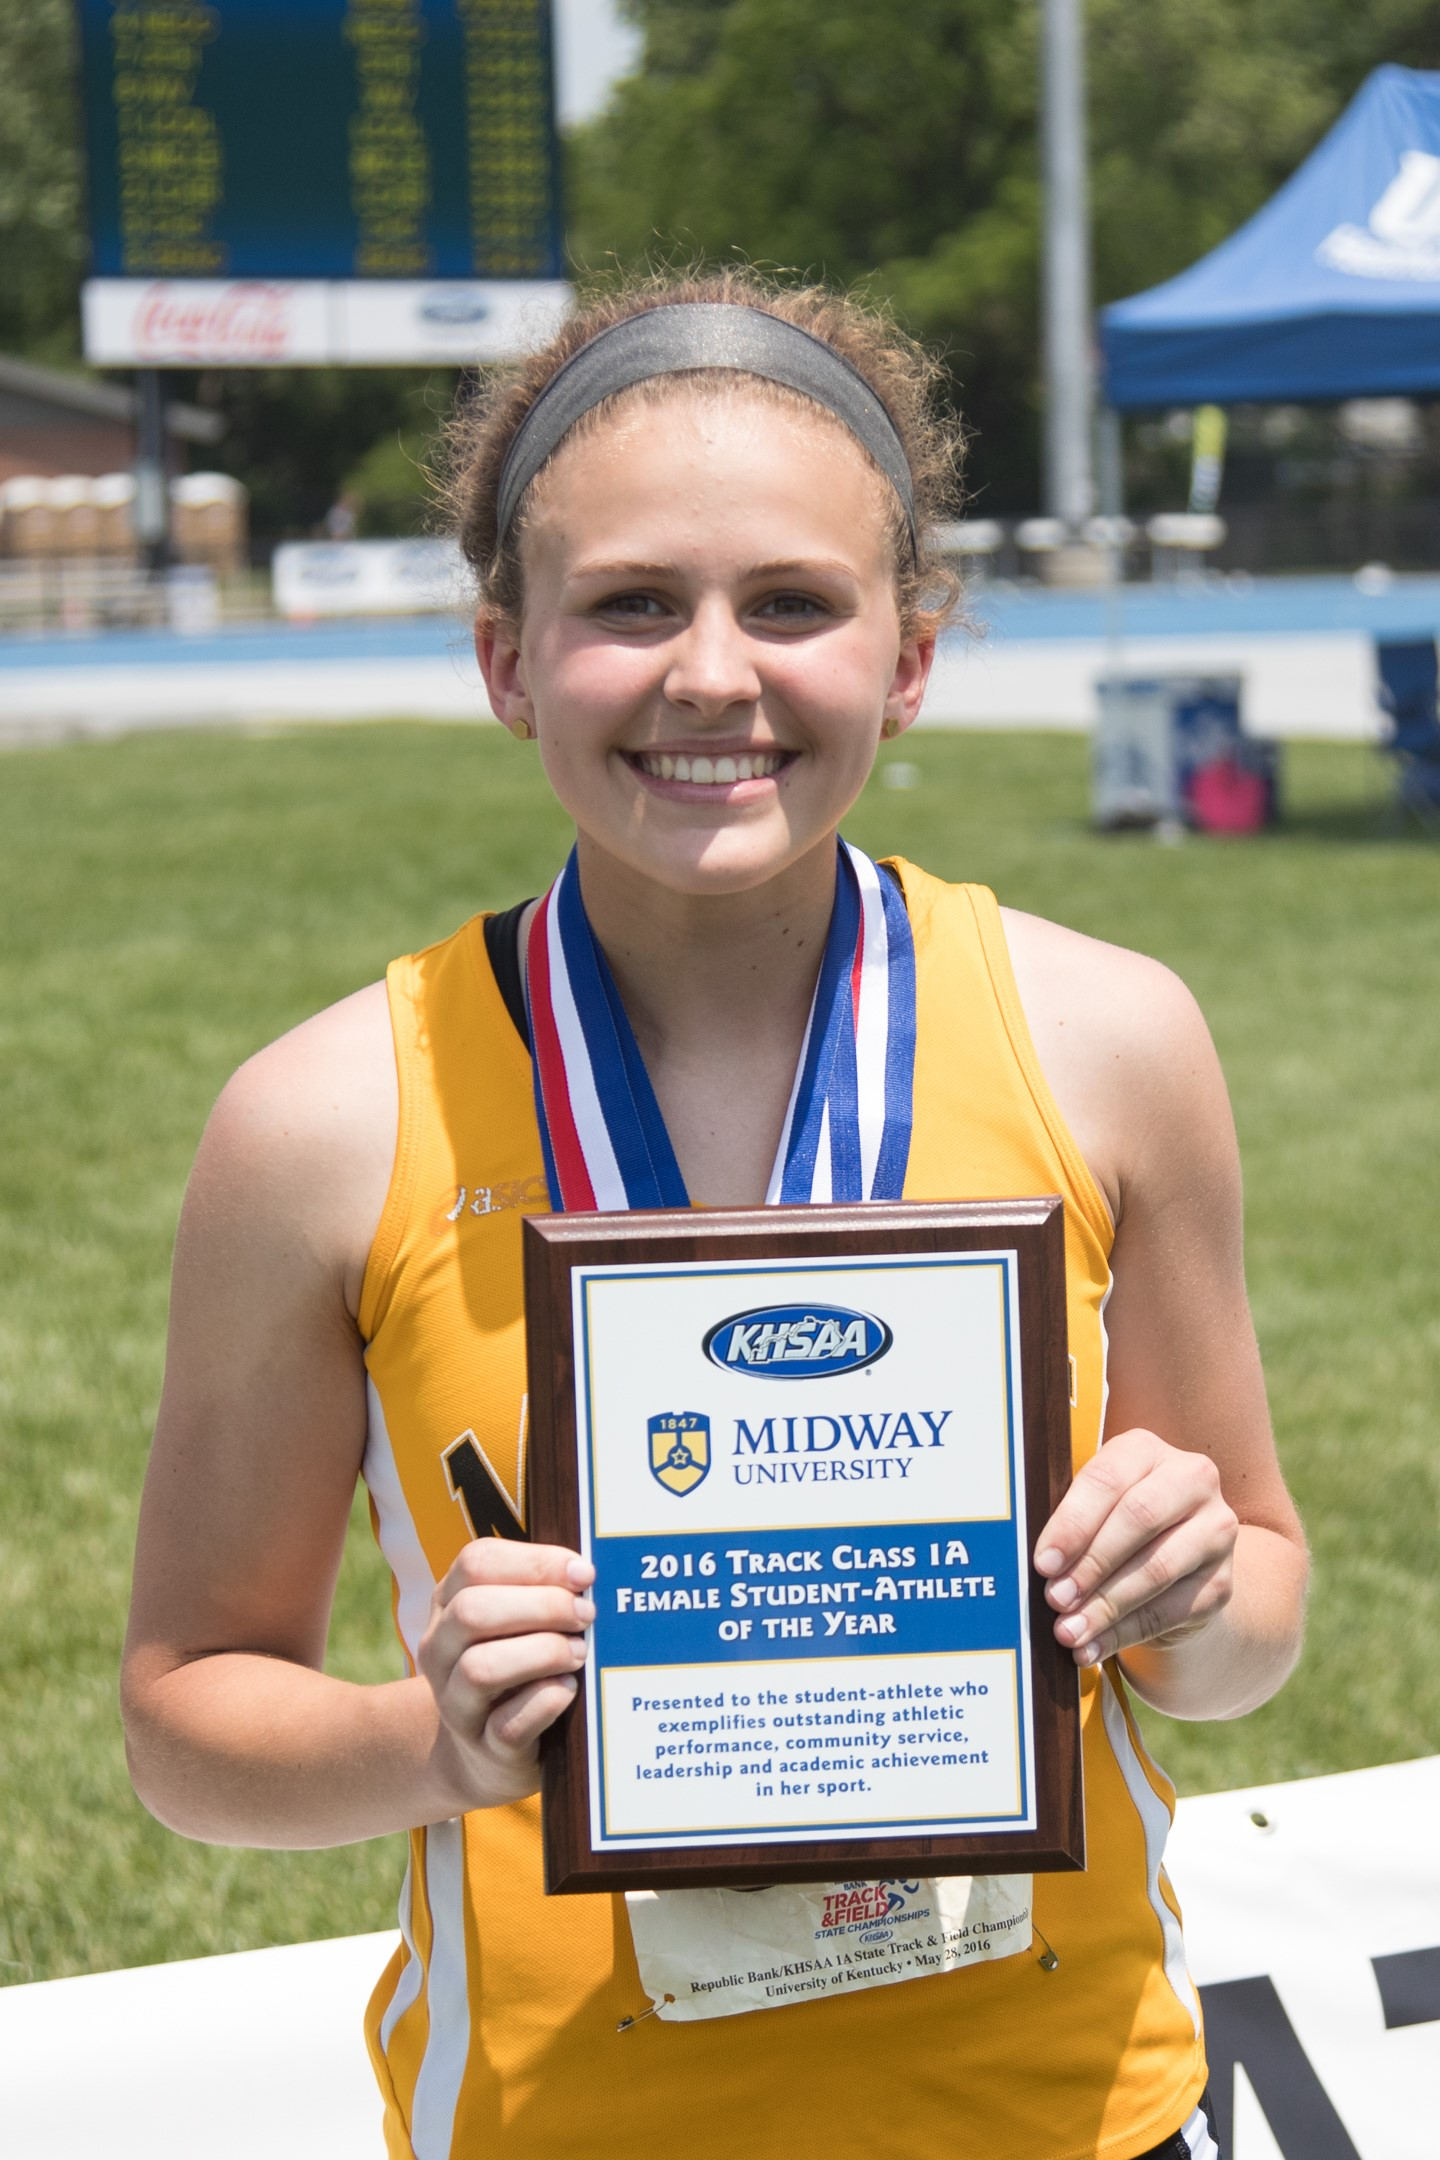 Taylor, Reed Win Midway University/KHSAA Female Student-Athlete of the Year Awards